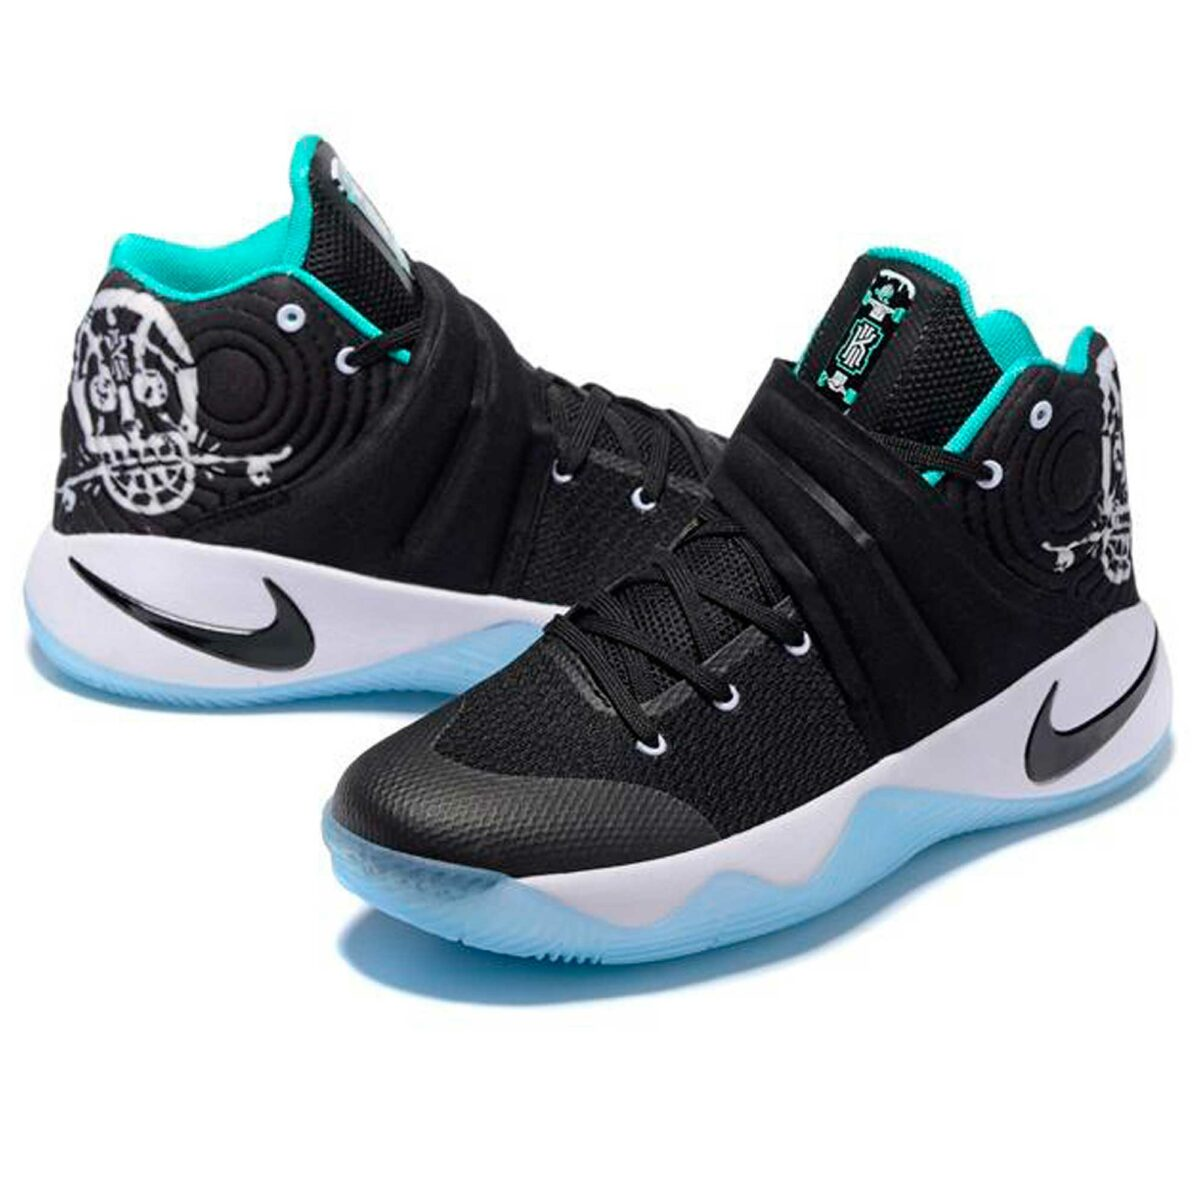 nike kyrie 2 GS court deck 826673_001 купить